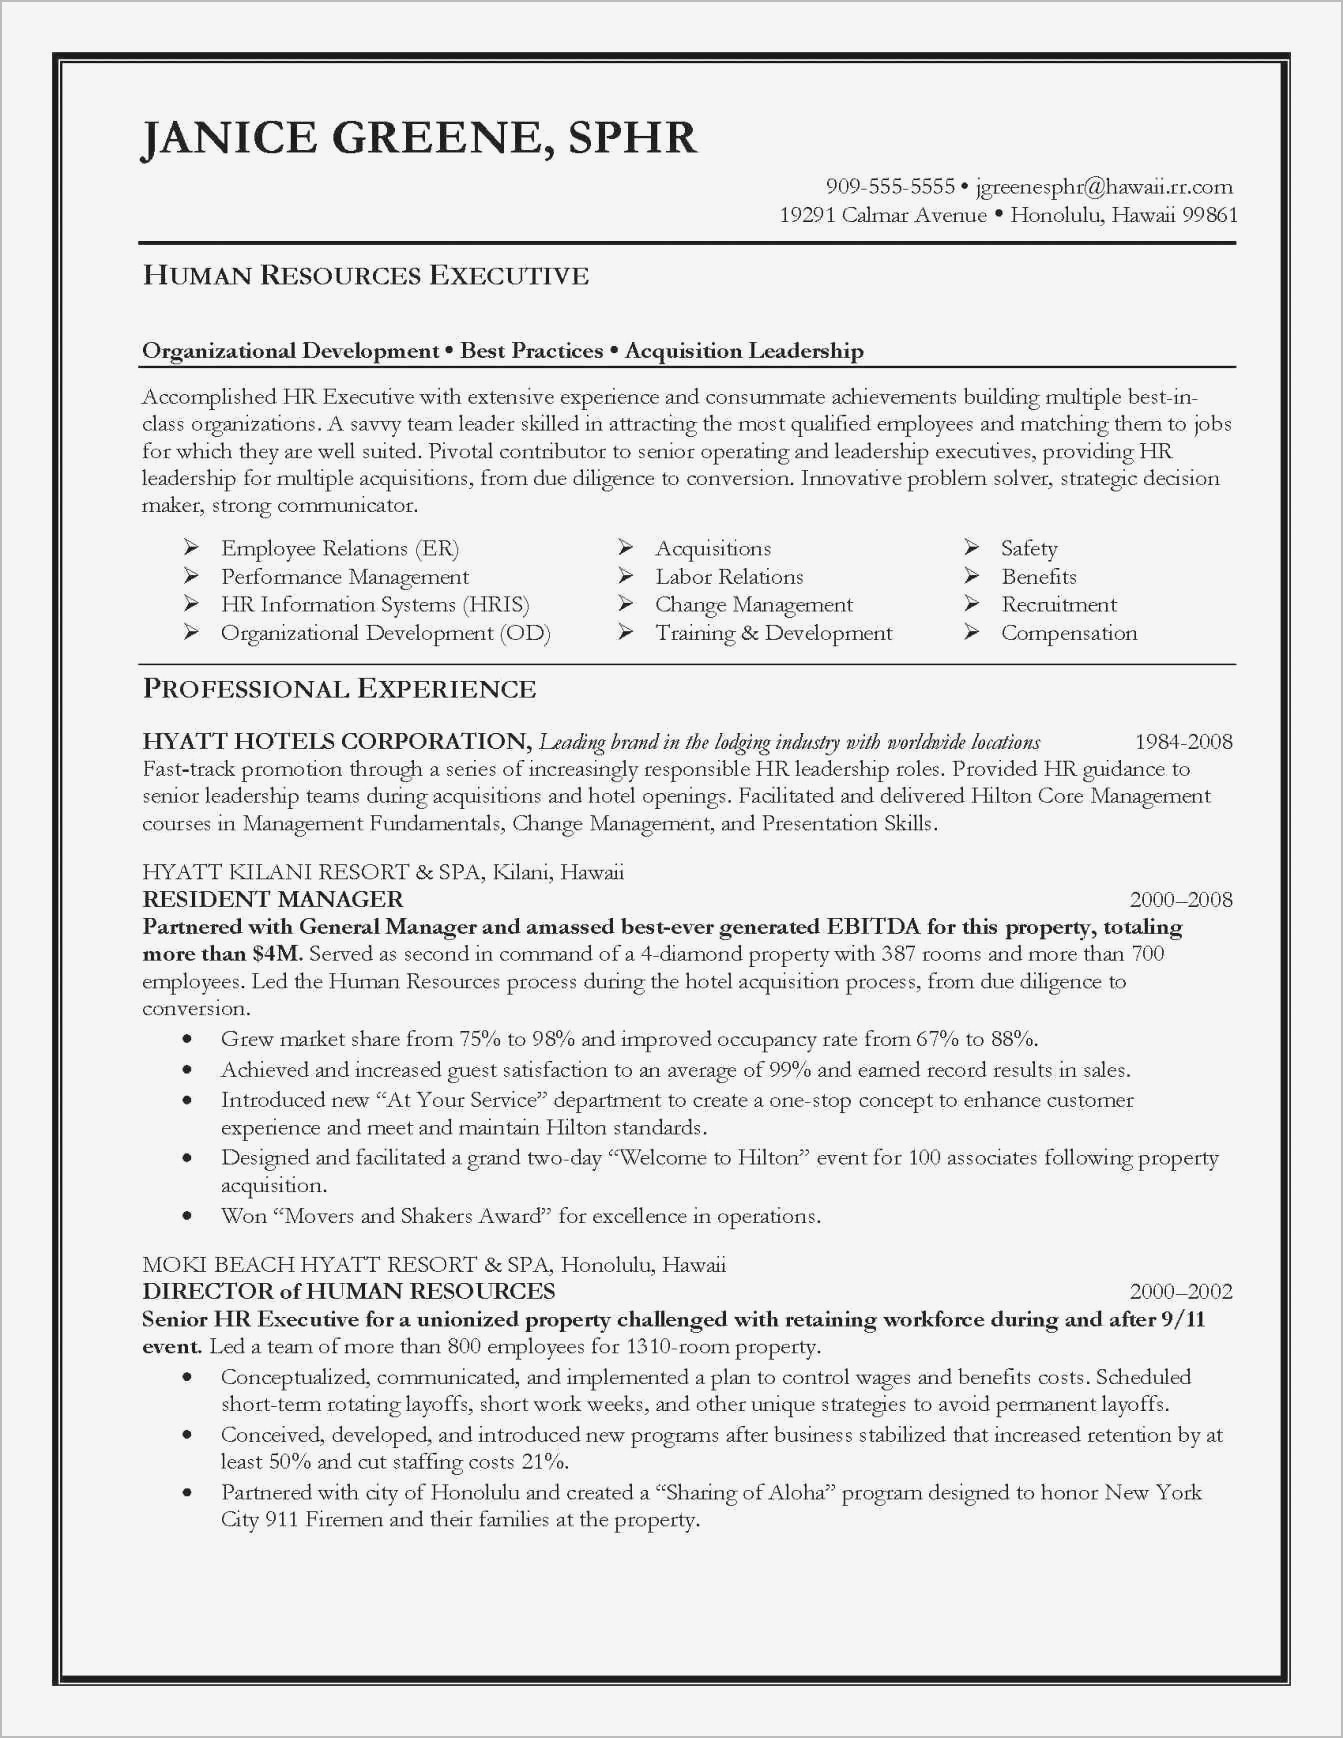 List associate Degree On Resume - How to Write Degree Resume Elegant Unique How to List associate